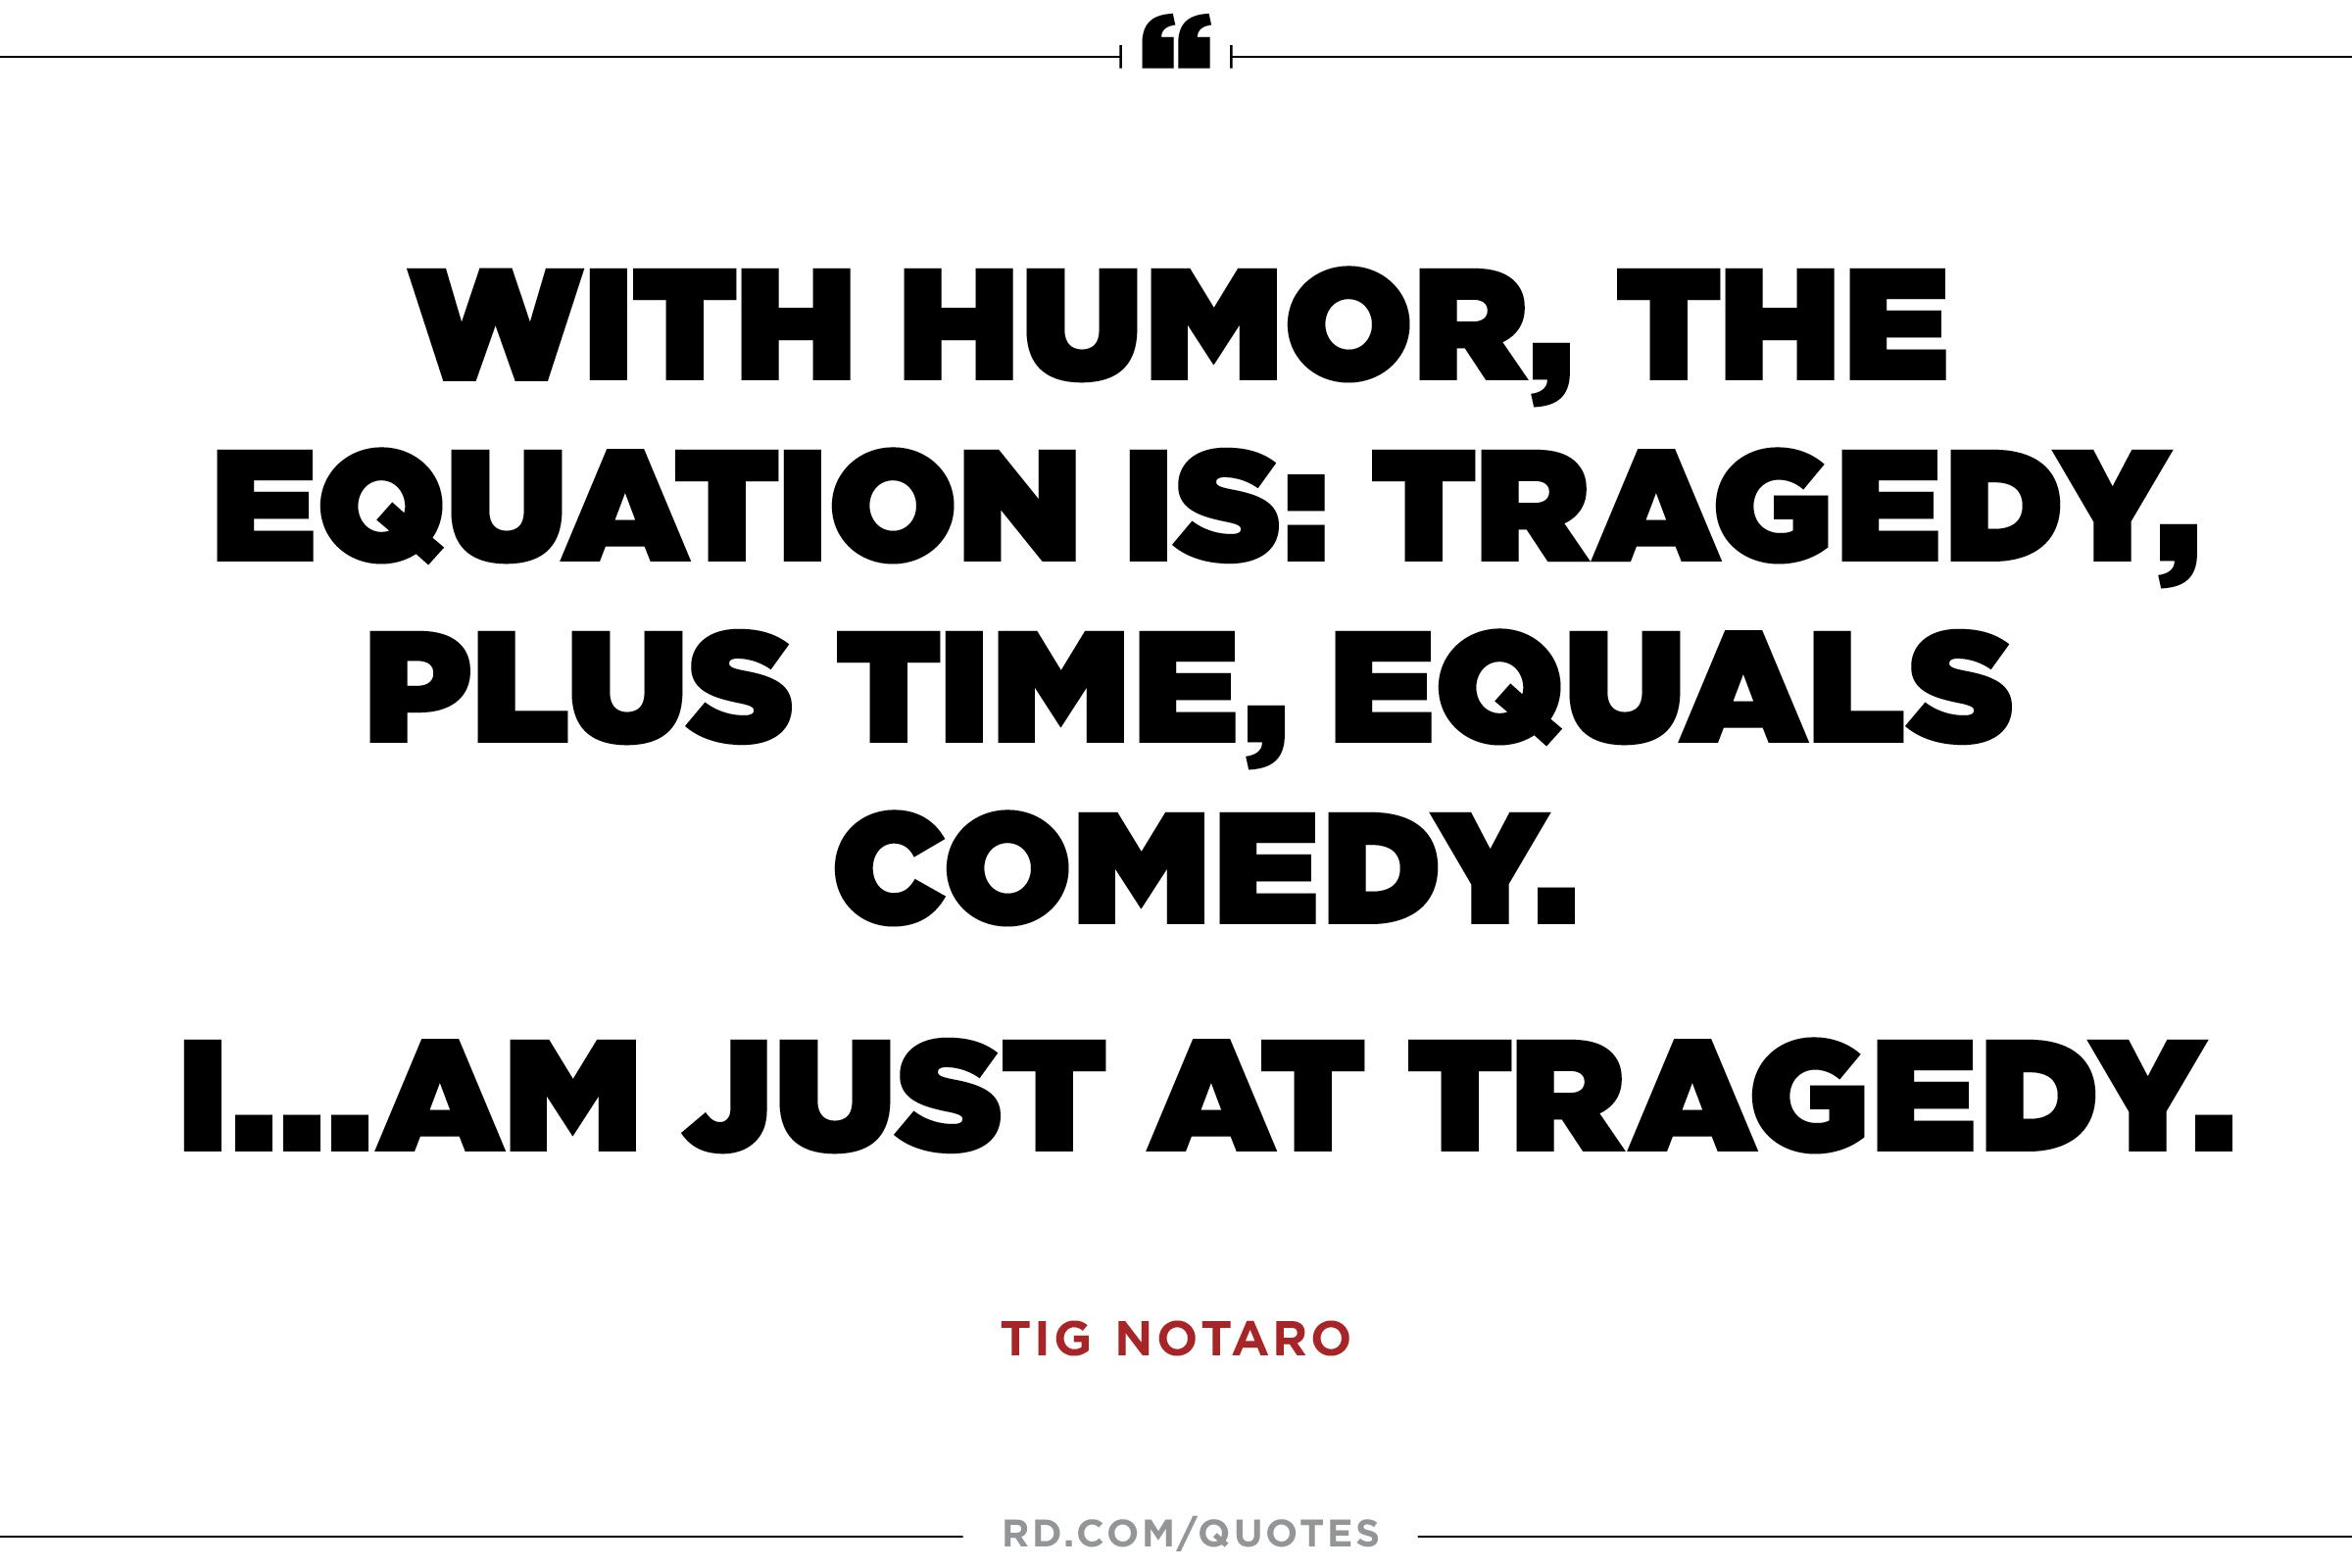 What is sense of humor means